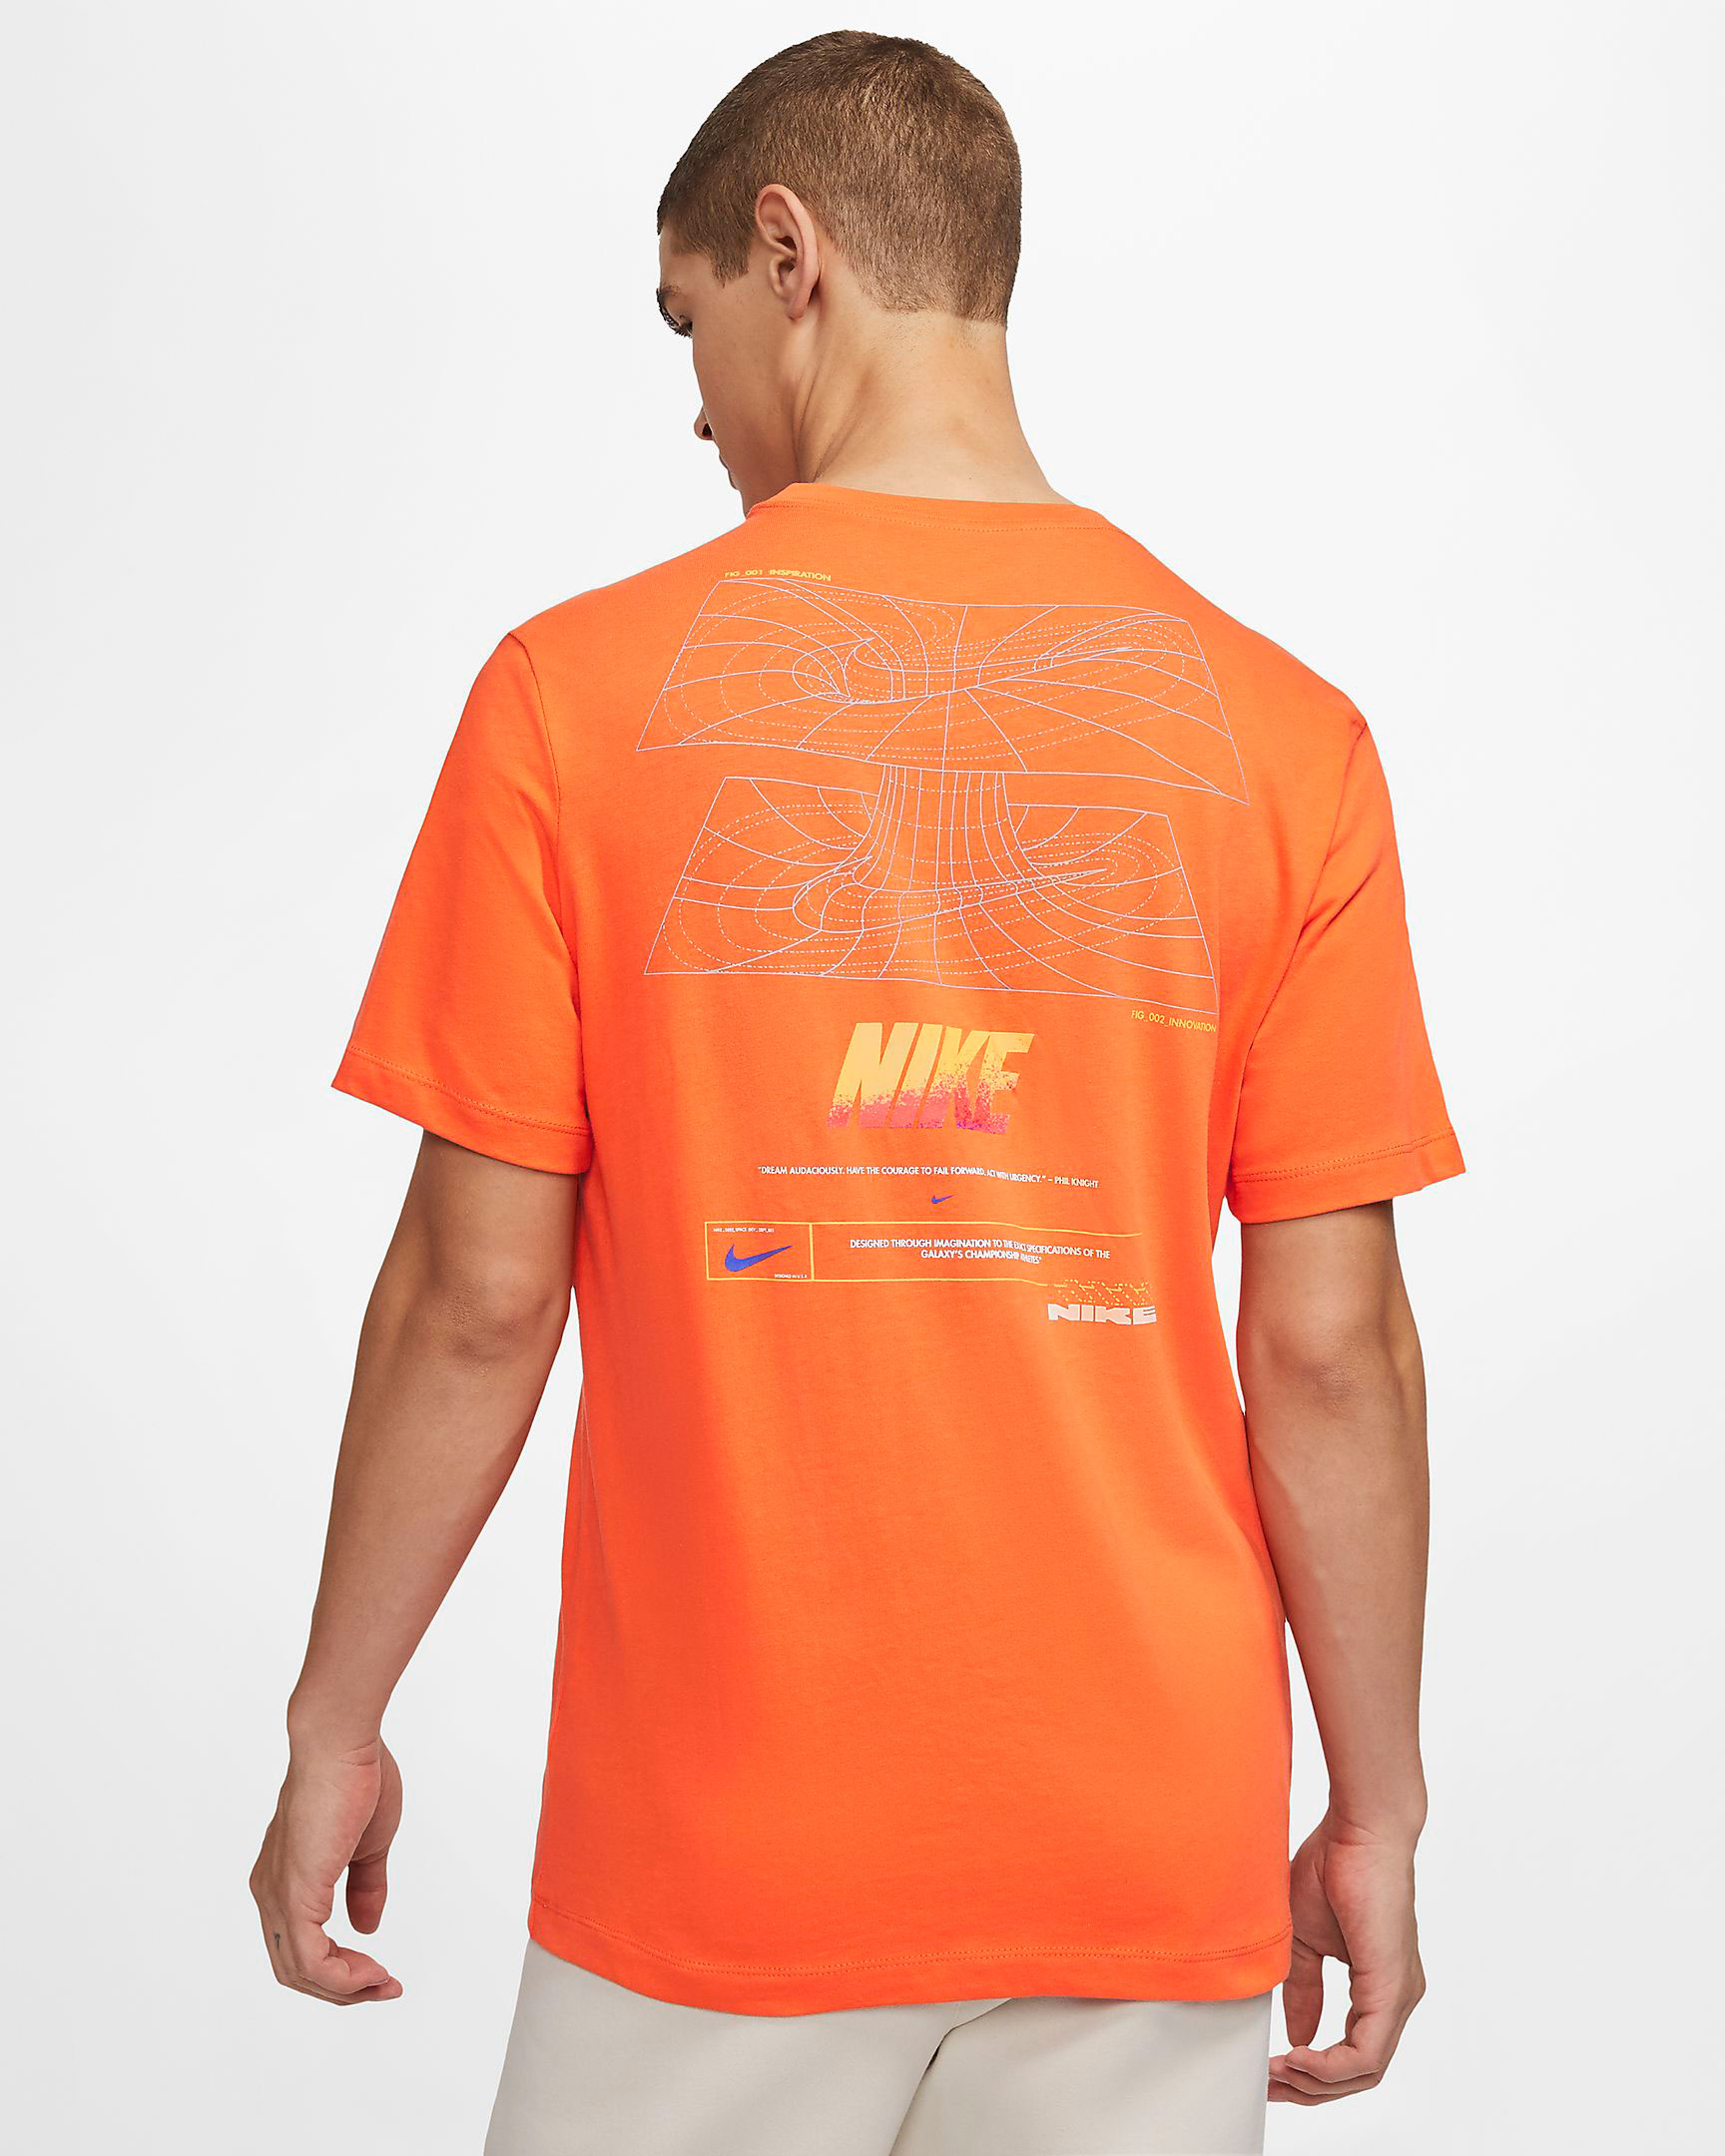 nike-supernova-shirt-orange-2